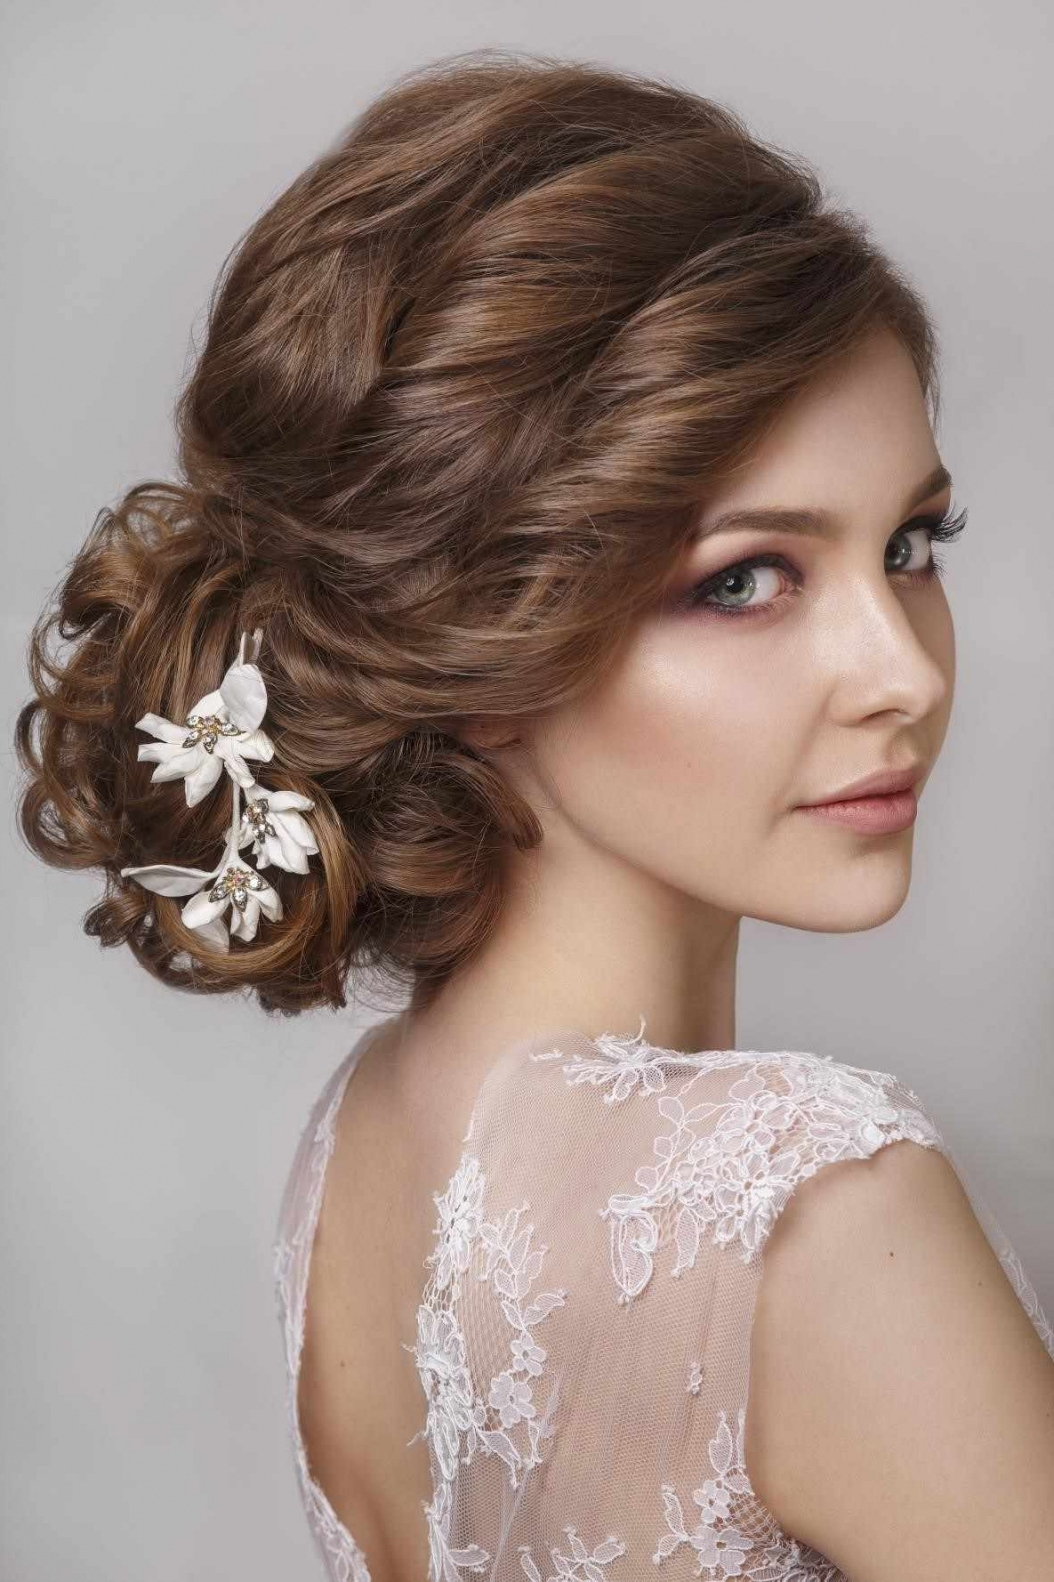 Photo Gallery of Wedding Hairstyles For Round Face (Viewing 9 of 15 ...